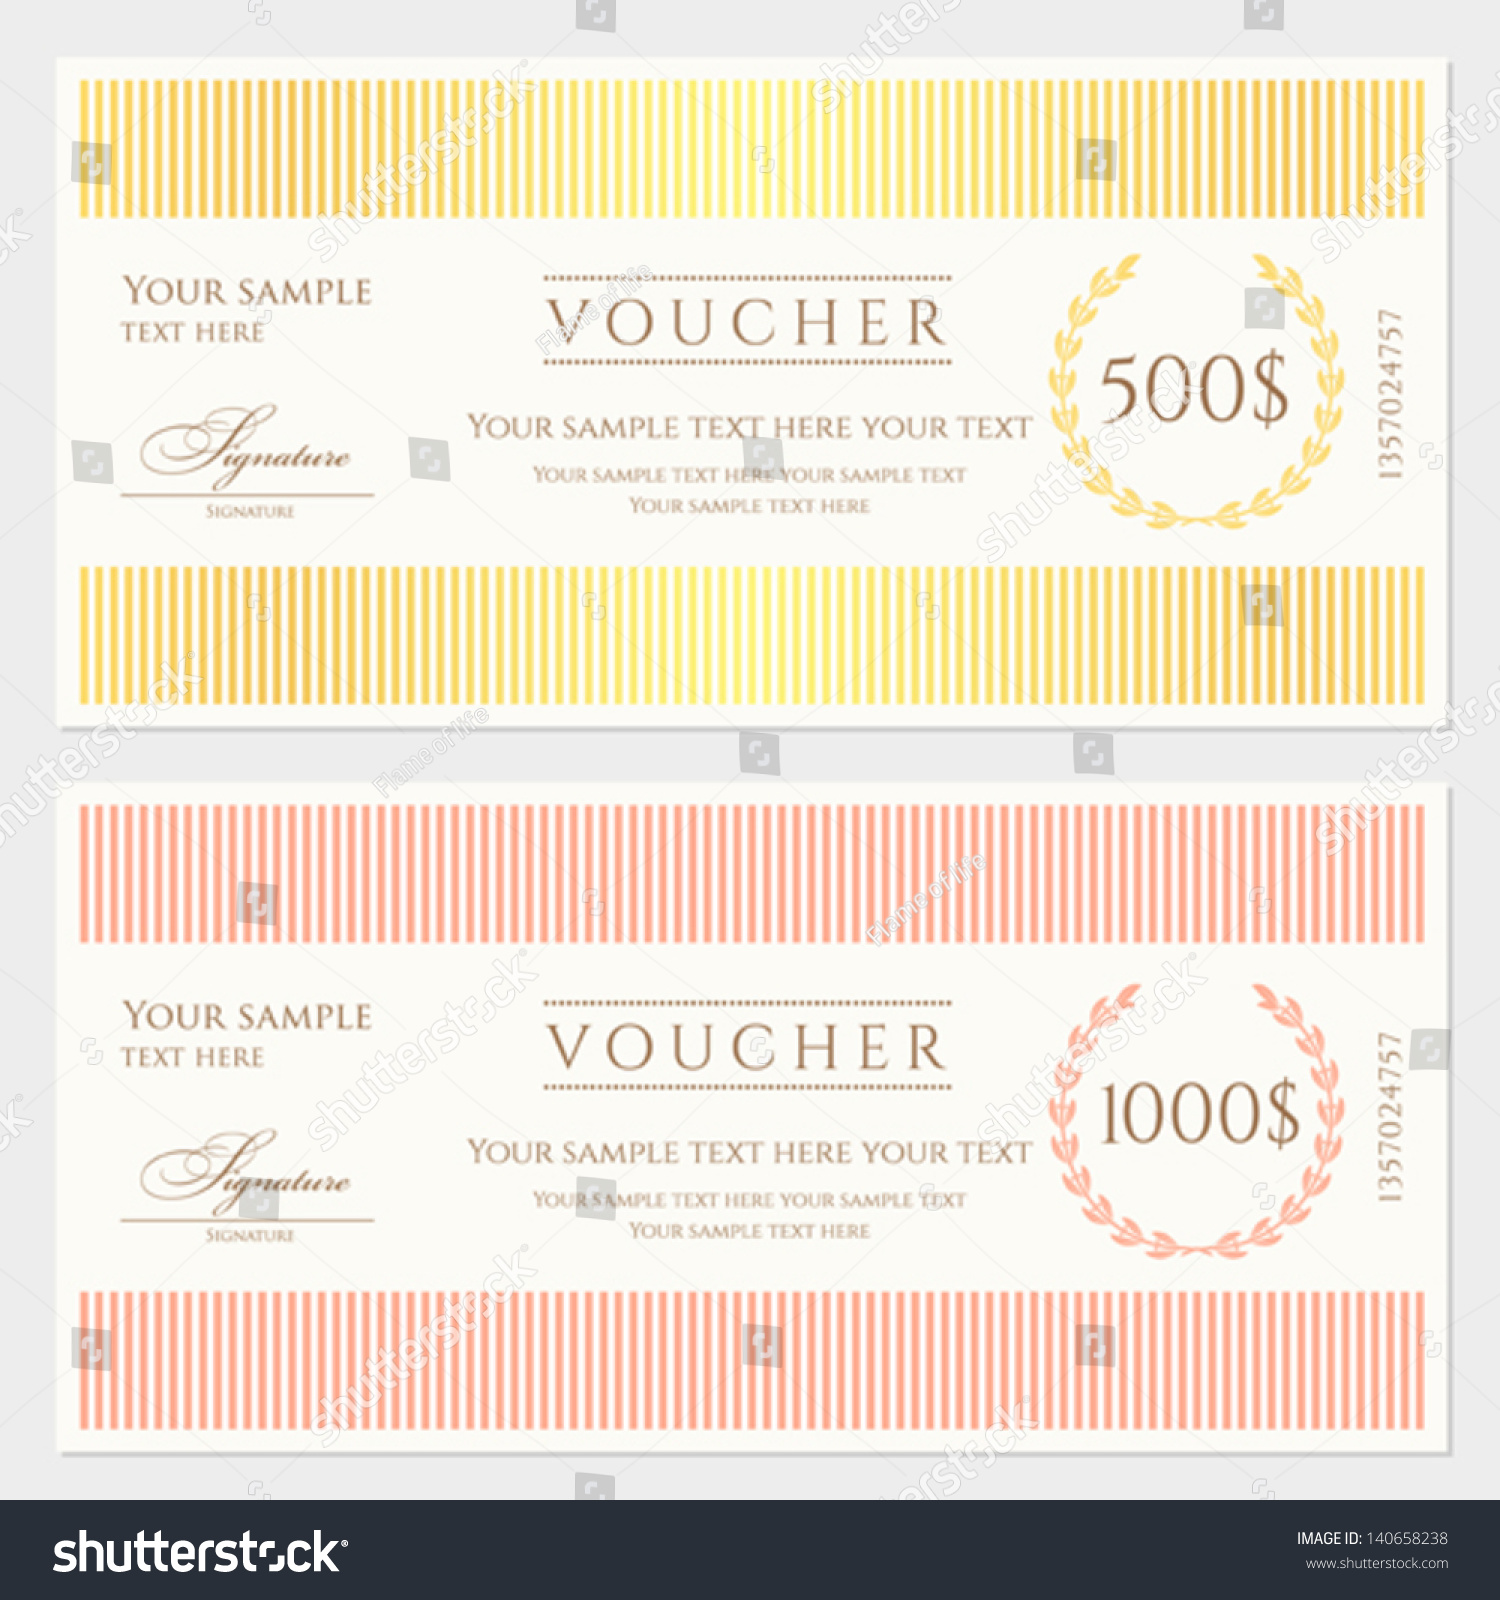 Voucher gift certificate template colorful stripy stock vector voucher gift certificate template with colorful stripy pattern and border background usable for coupon yadclub Image collections